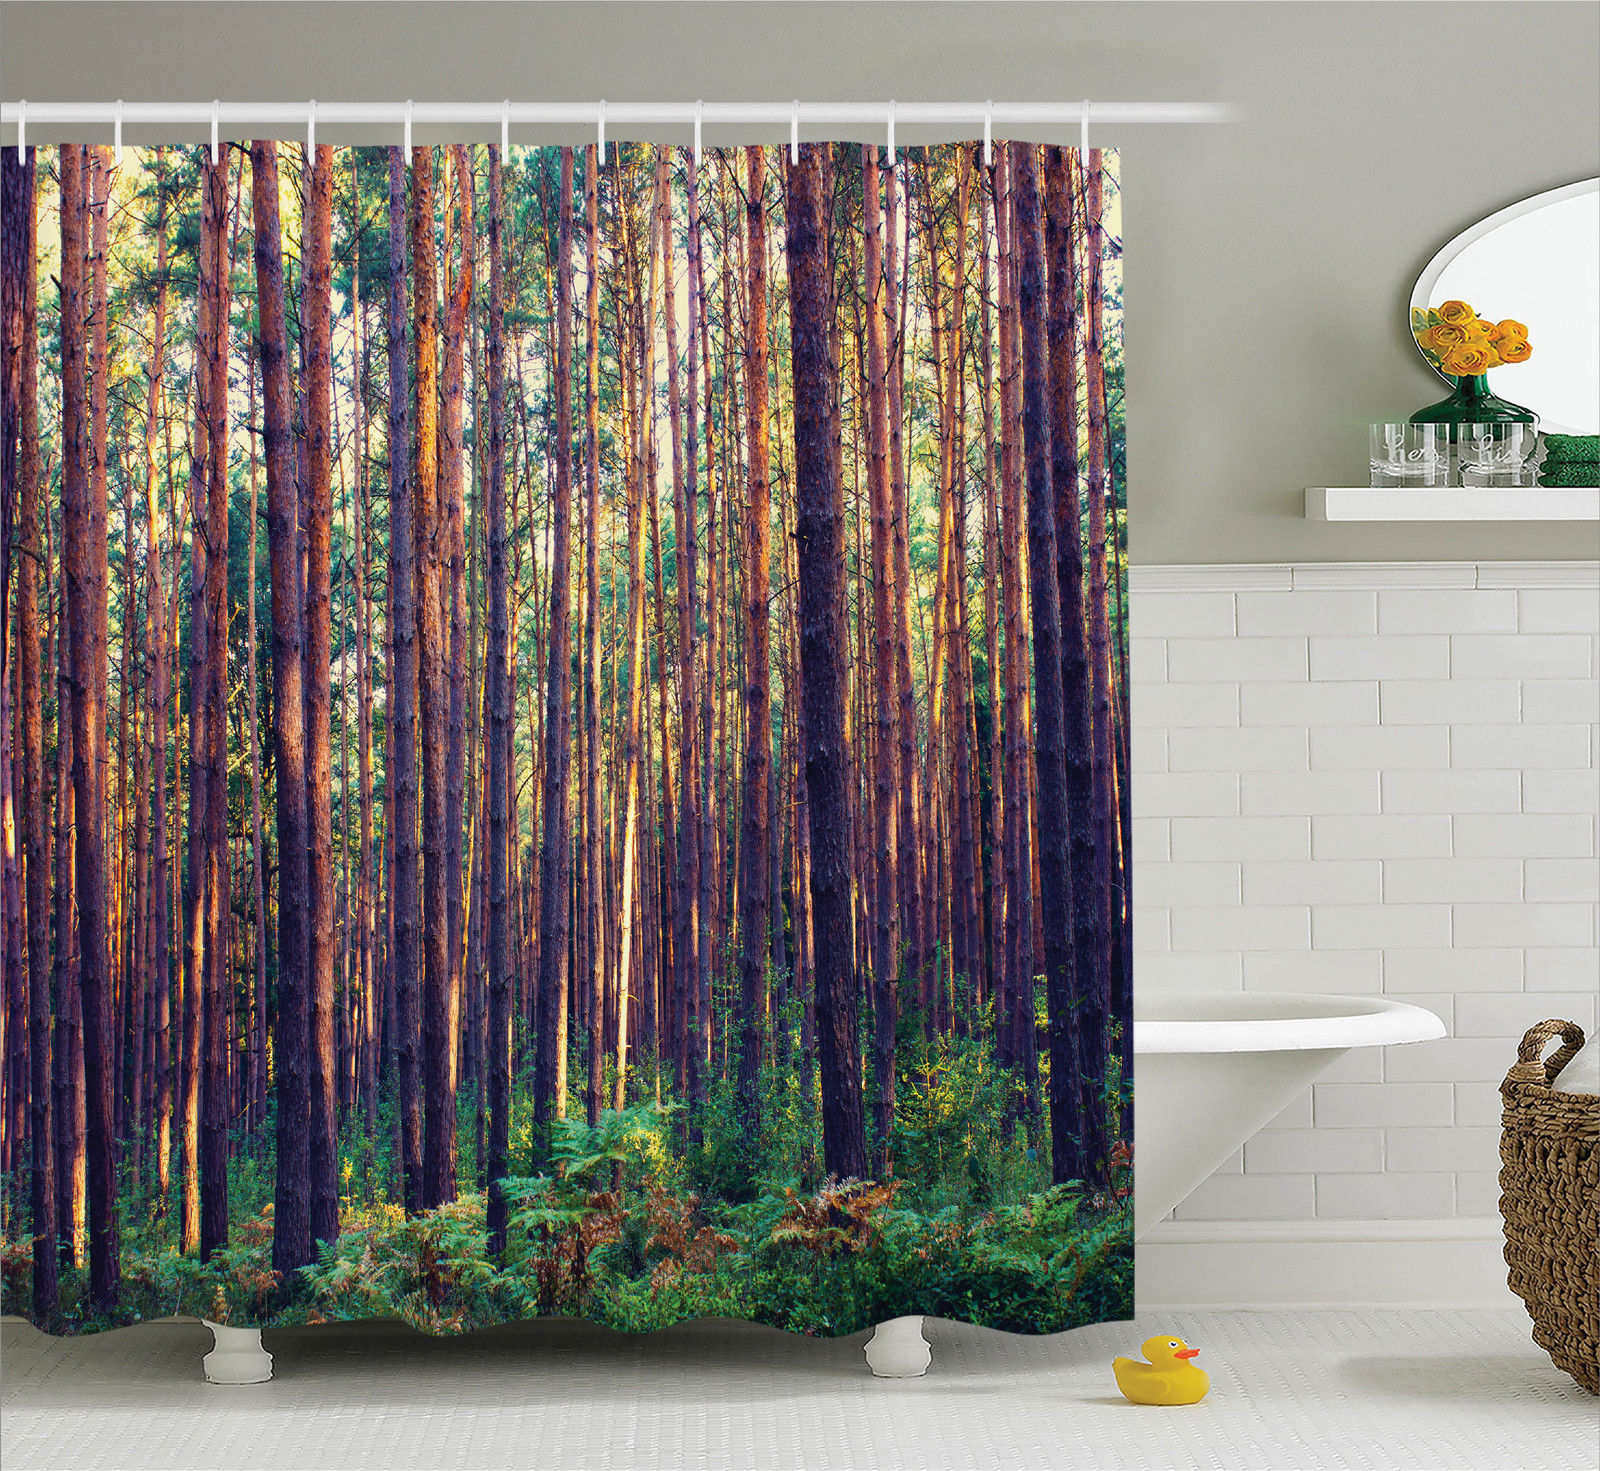 Farm House Decor Shower Curtain Set, Forest In The Morning Light Tall Trees Trunks Greenery Natural Environment Picture, Bathroom Accessories, 69W X 70L Inches, By Ambesonne